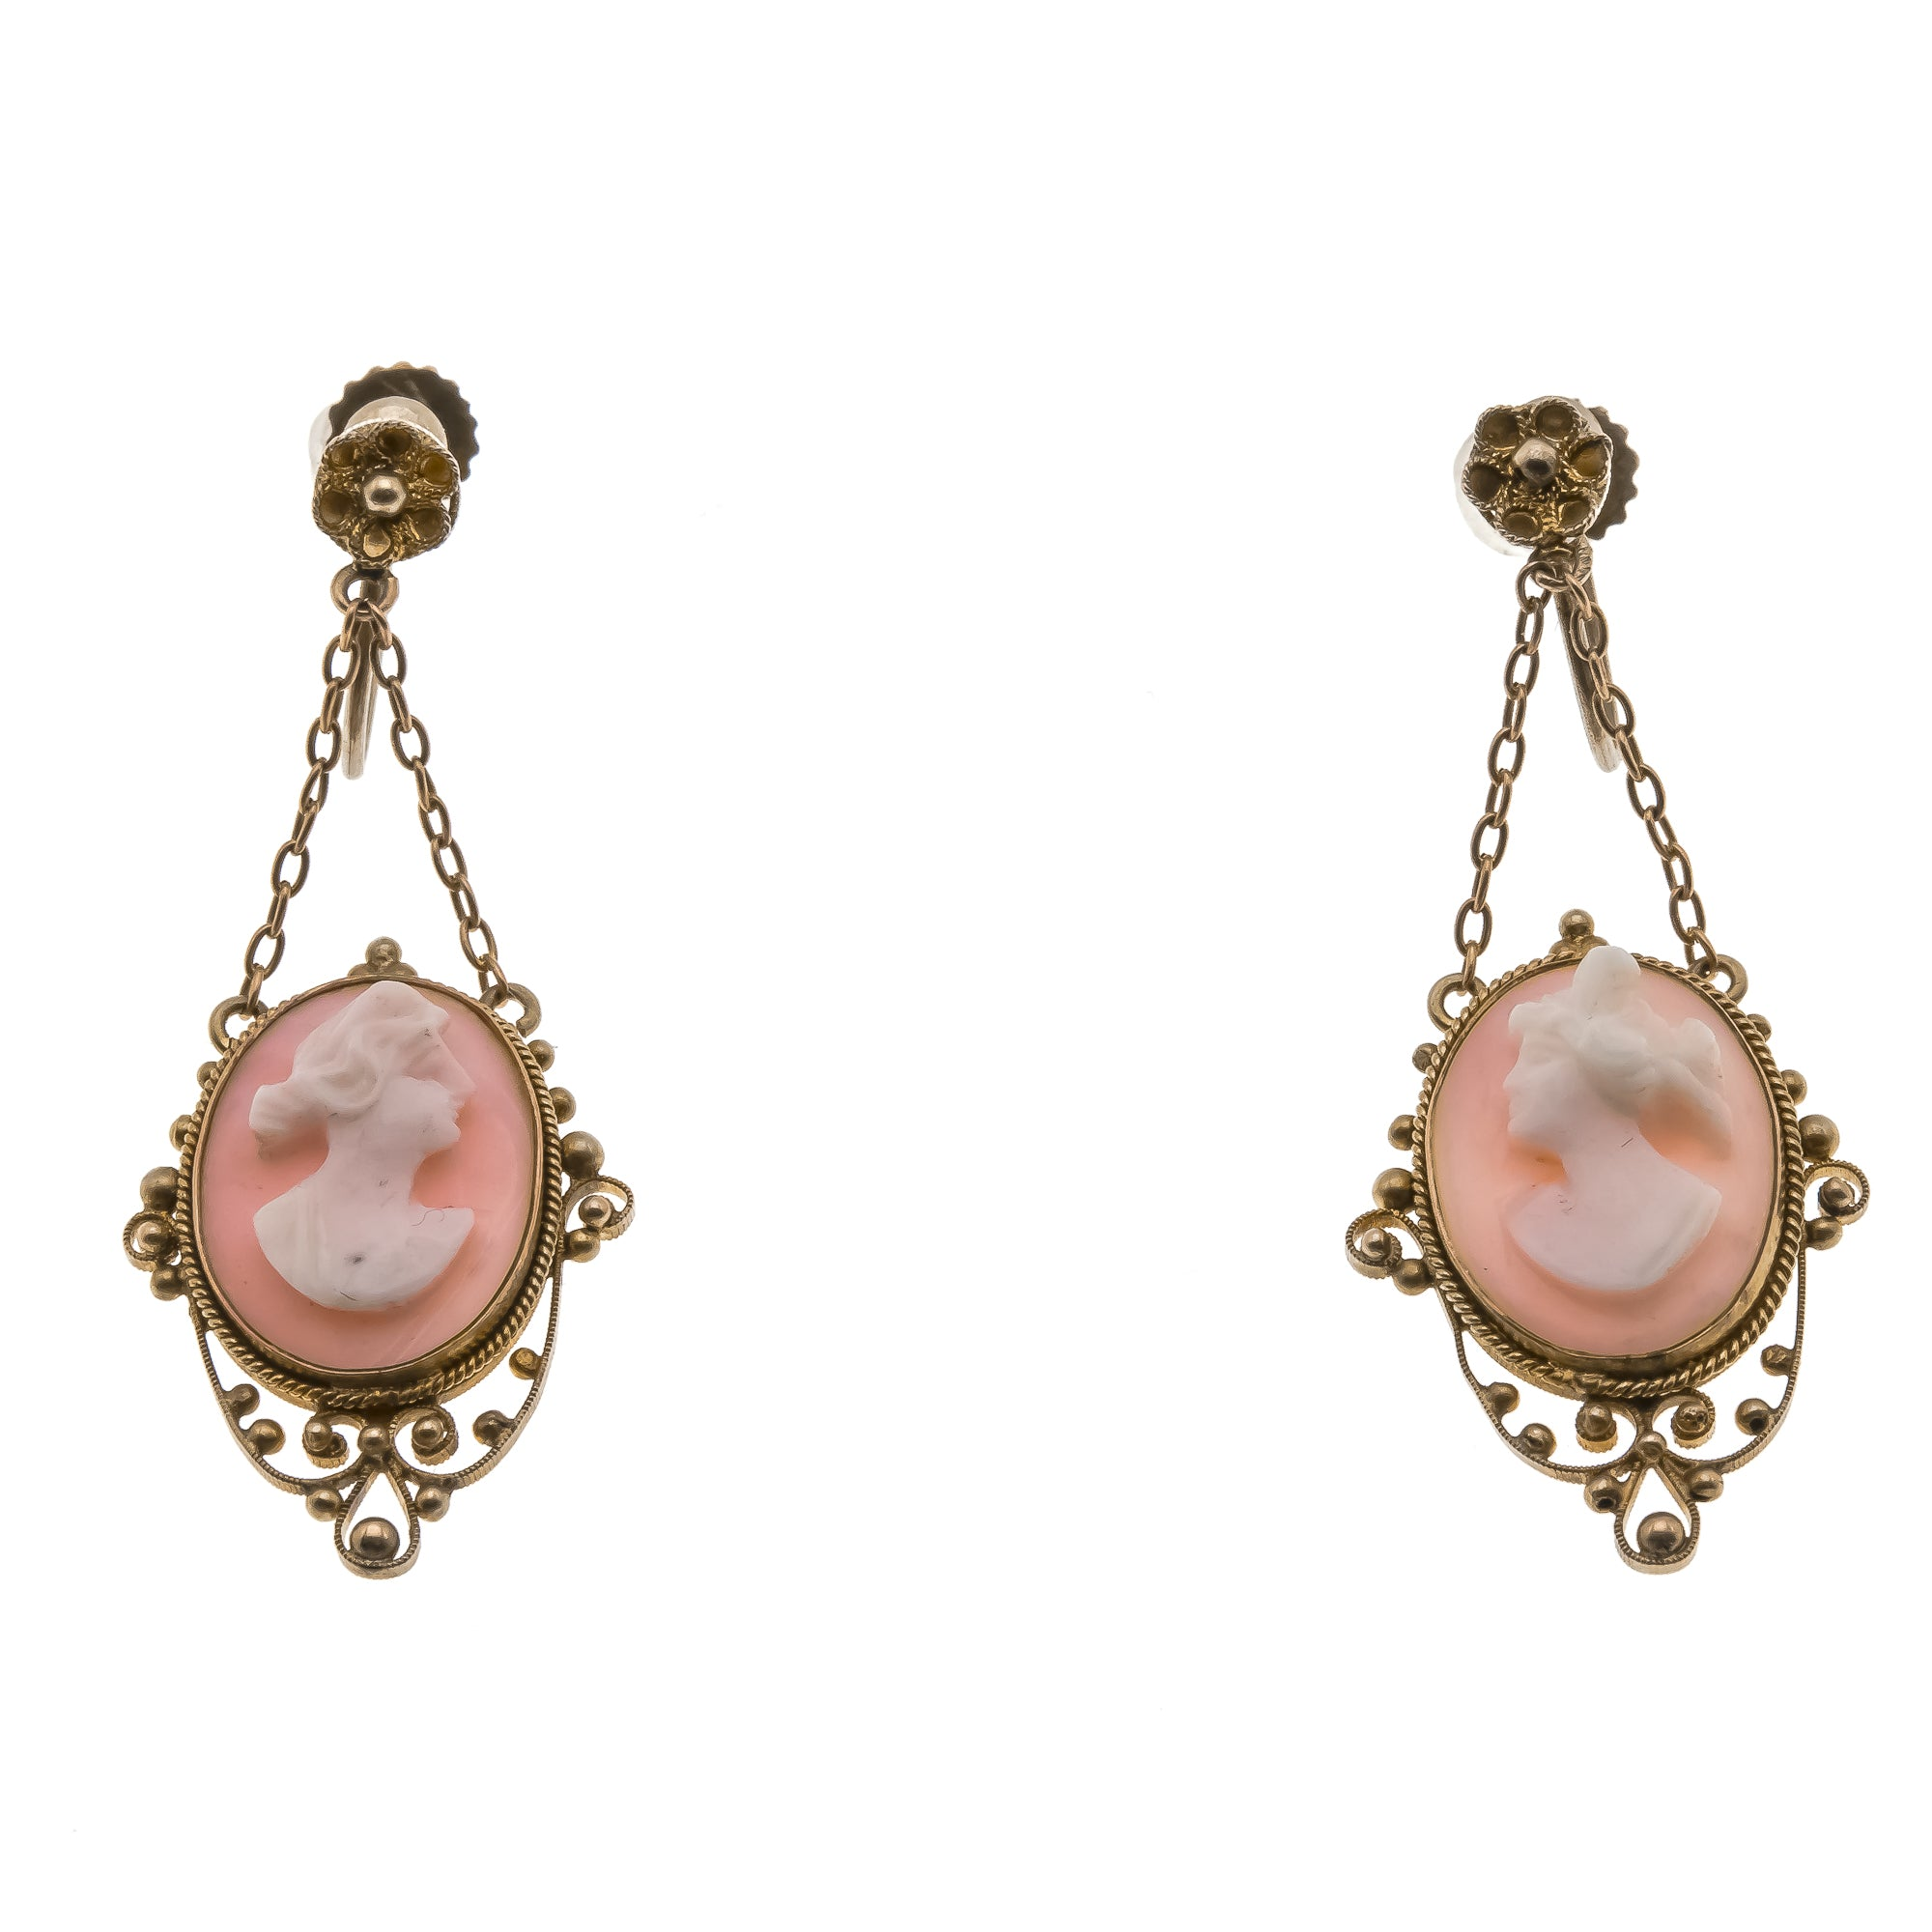 Etruscan Delicacy - Victorian 9K Etruscan Revival Carved Cameo Conch Shell Earrings (VICE030)                     VICE030